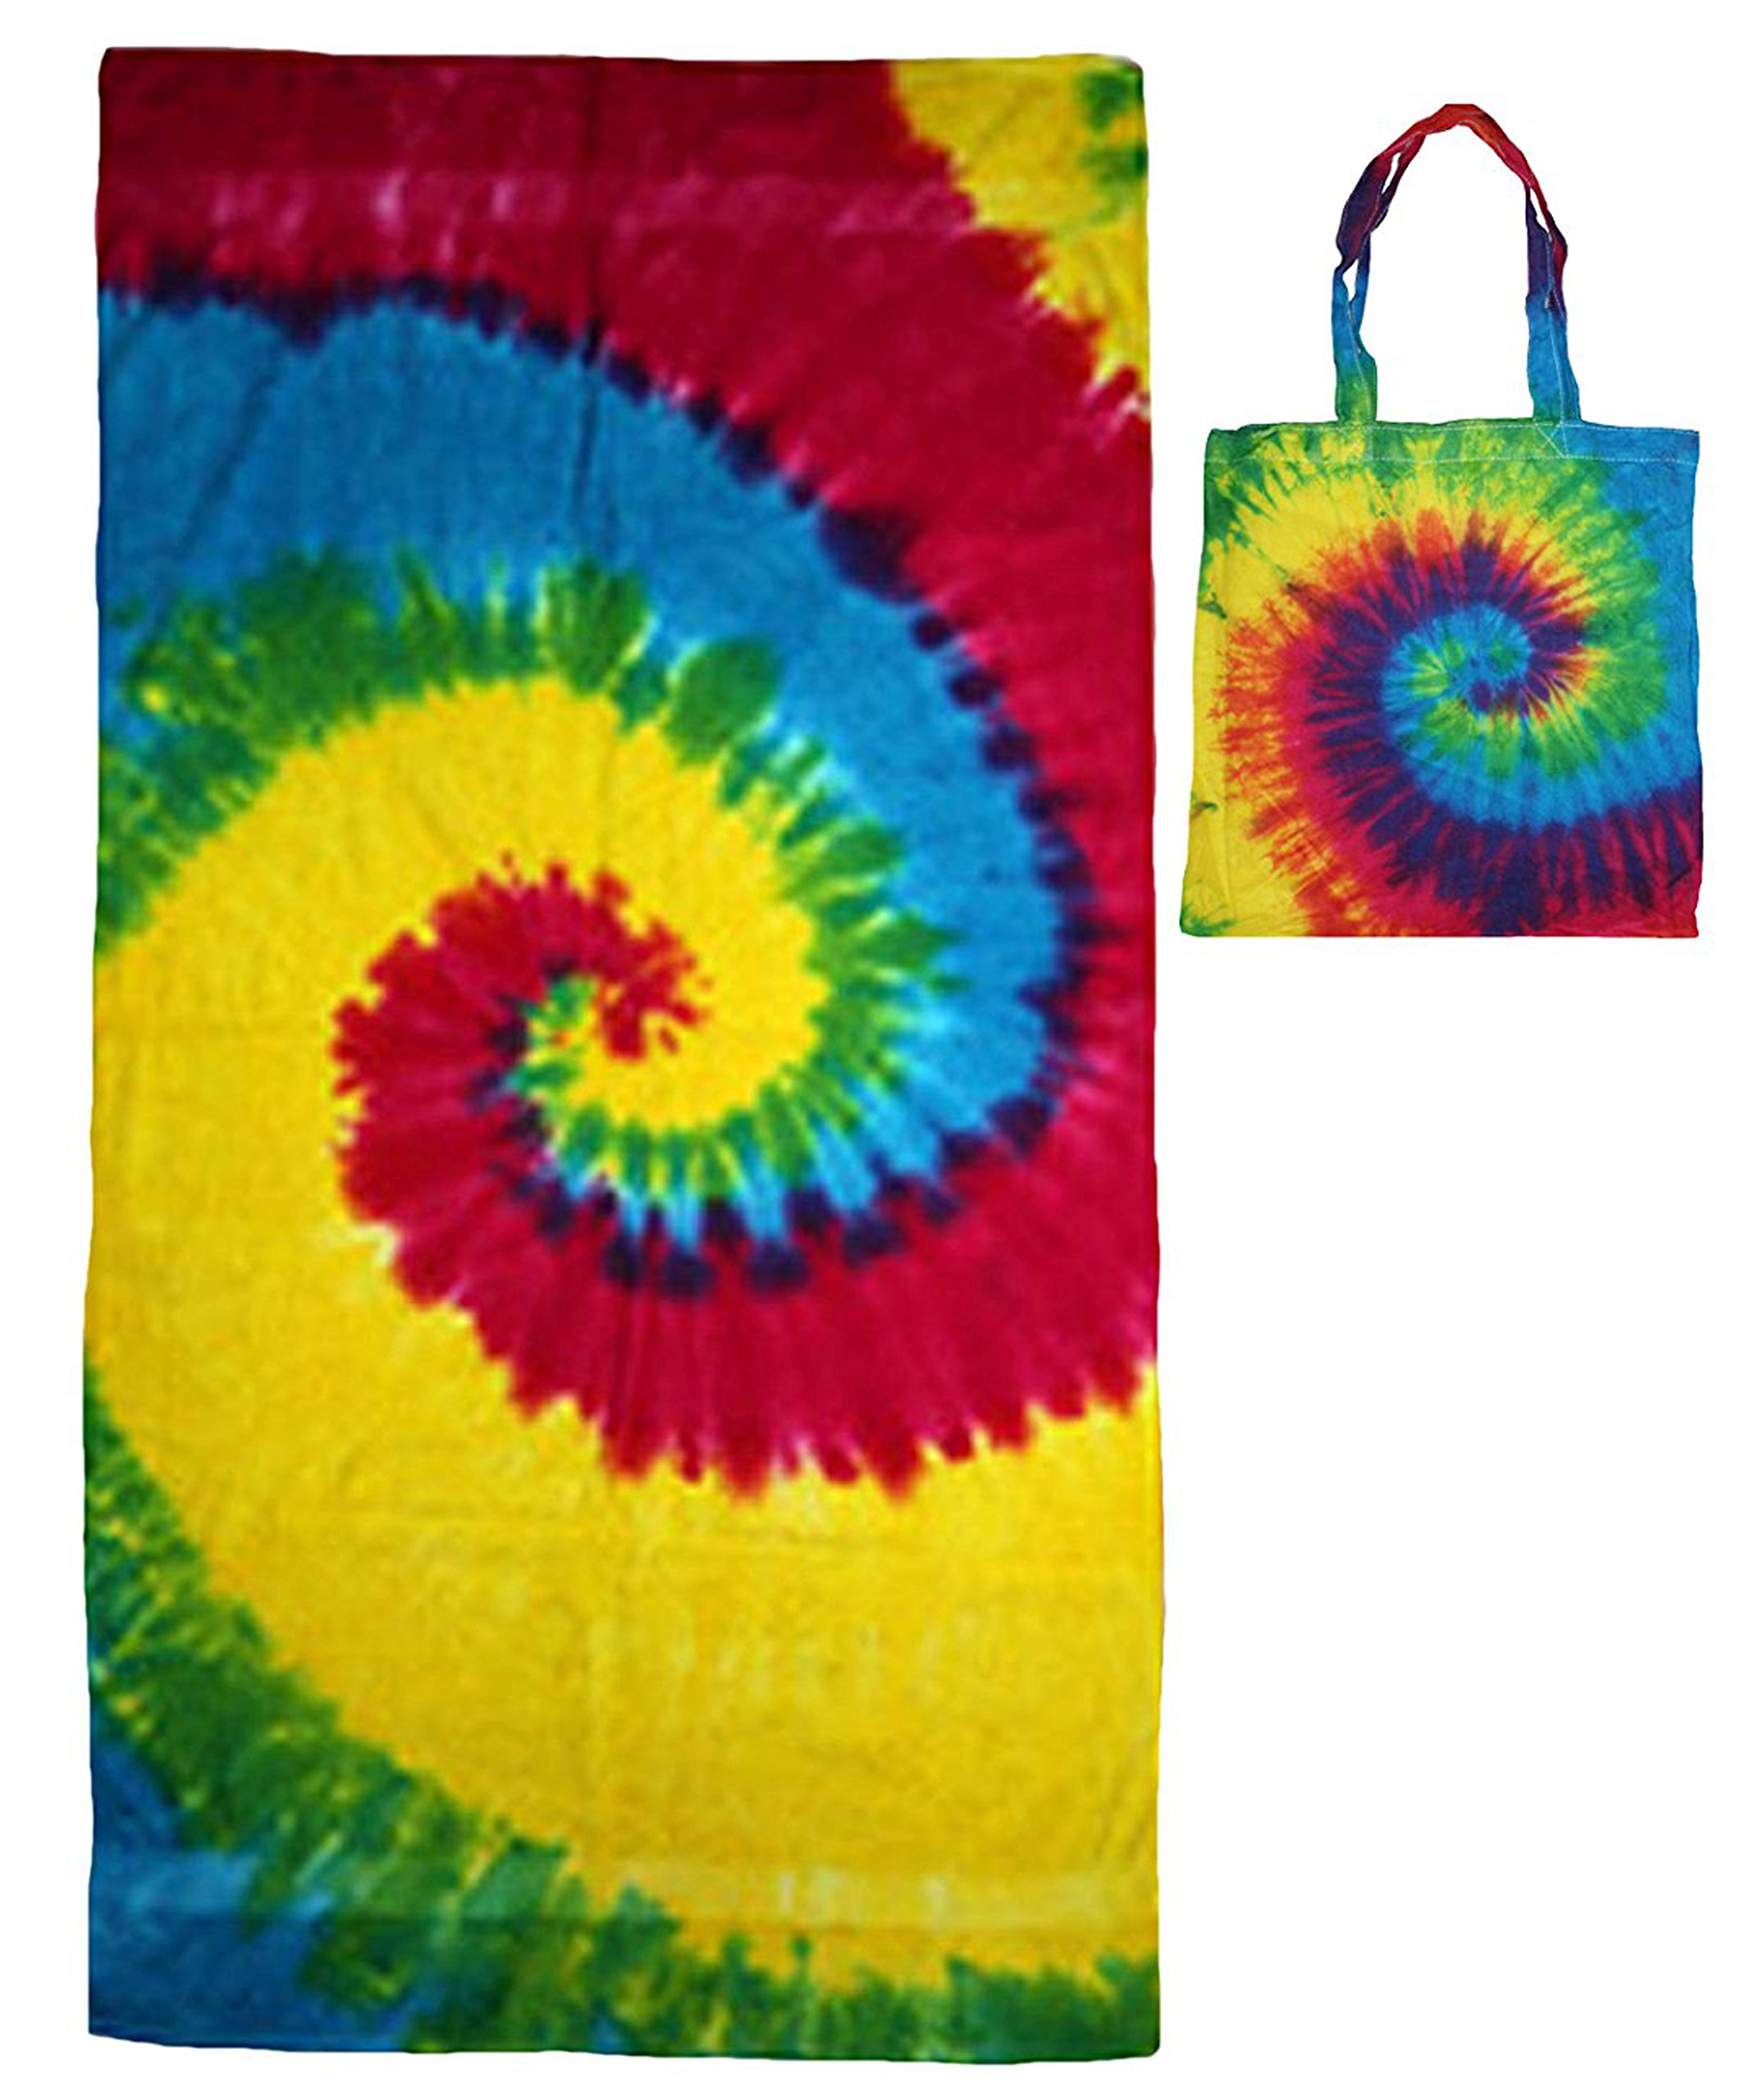 Colortone Rainbow Tye Dye Beach Towel and Rainbow Tye Dye Tote Bag Multi-Pack Gift Set